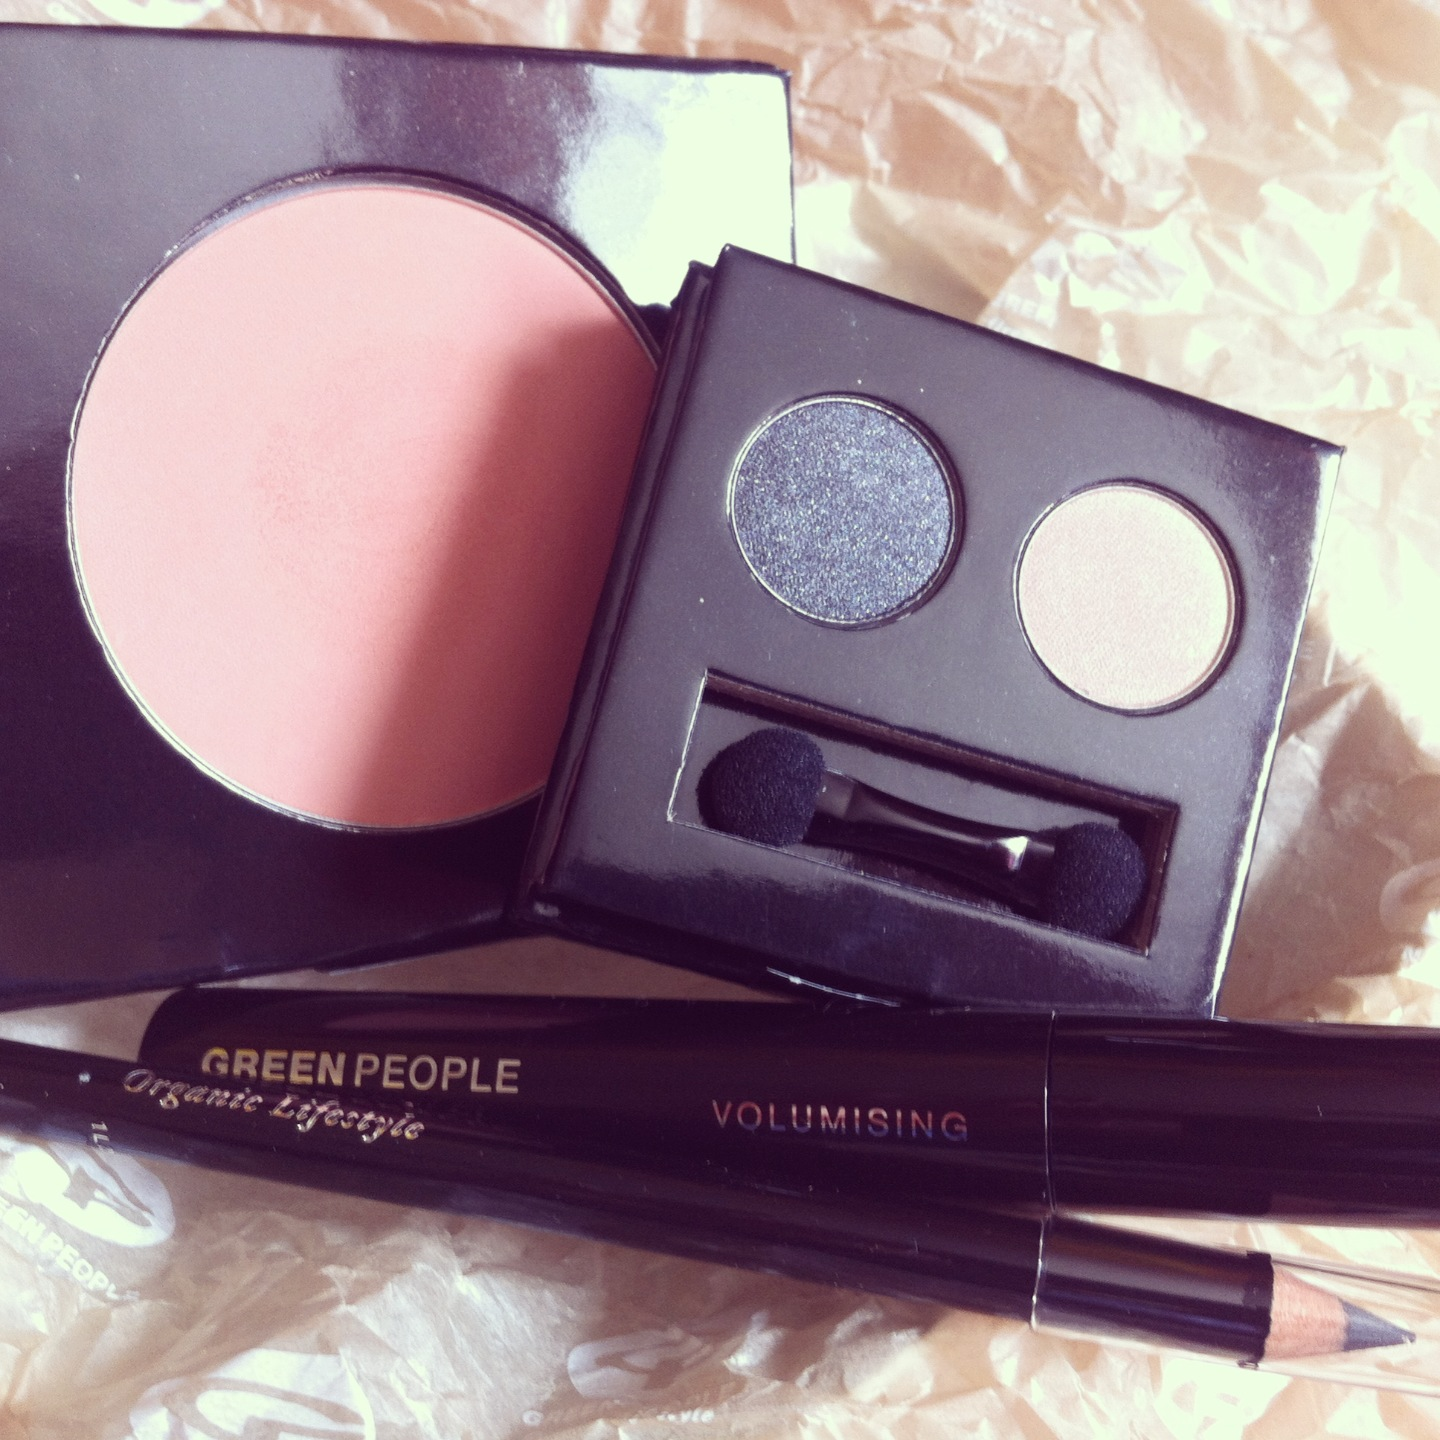 New additions to the kit – Green People make-up…